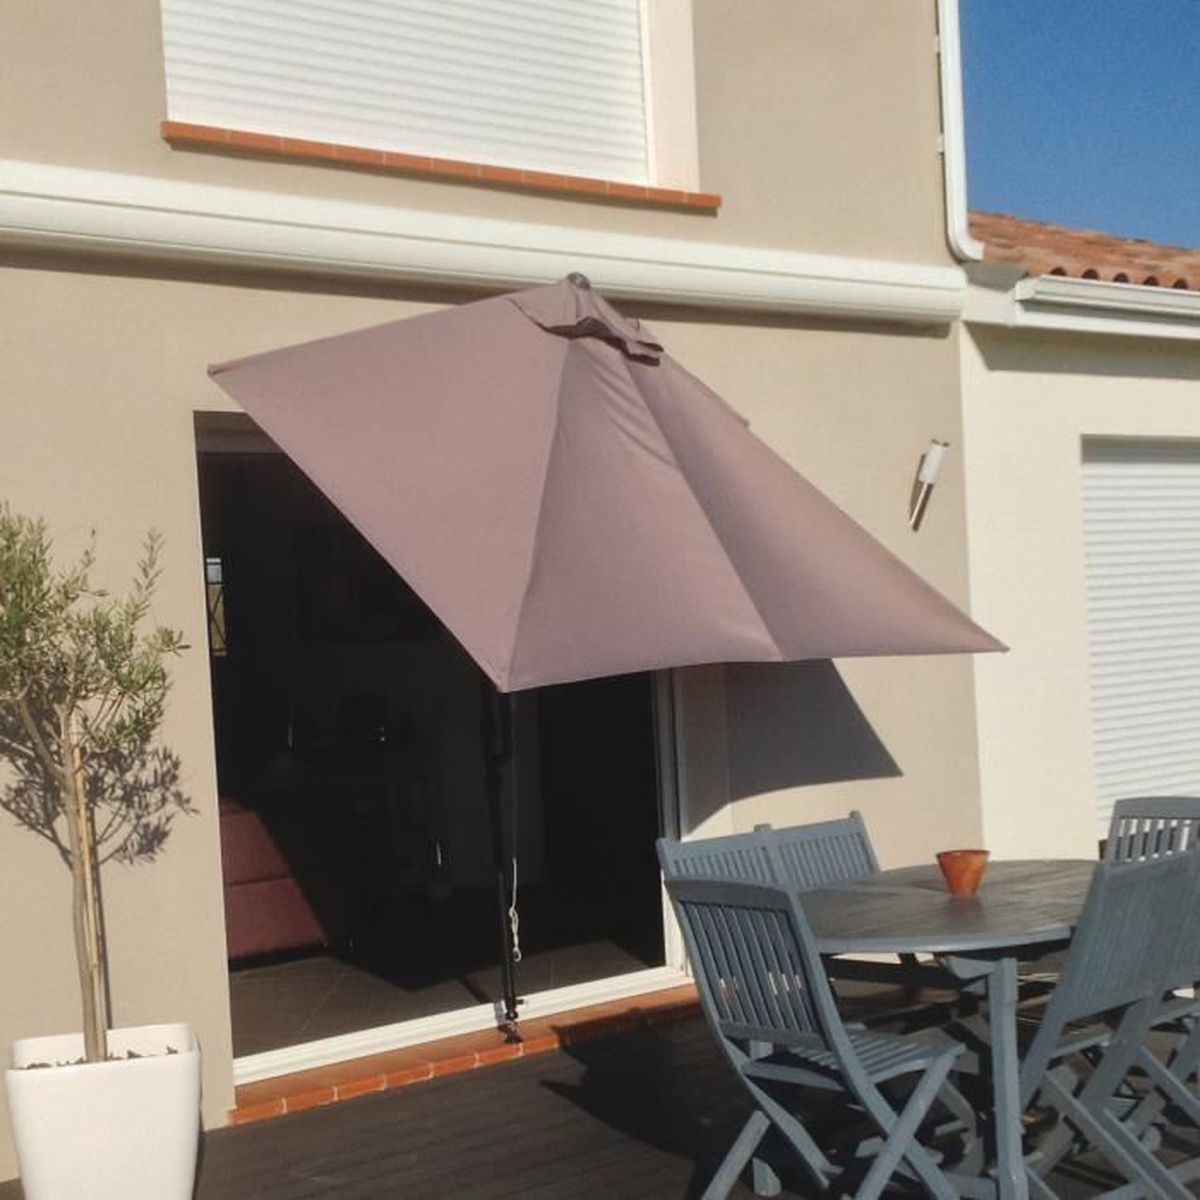 parasol de balcon rectangulaire 3 x m leo taupe achat vente parasol parasol de balcon. Black Bedroom Furniture Sets. Home Design Ideas